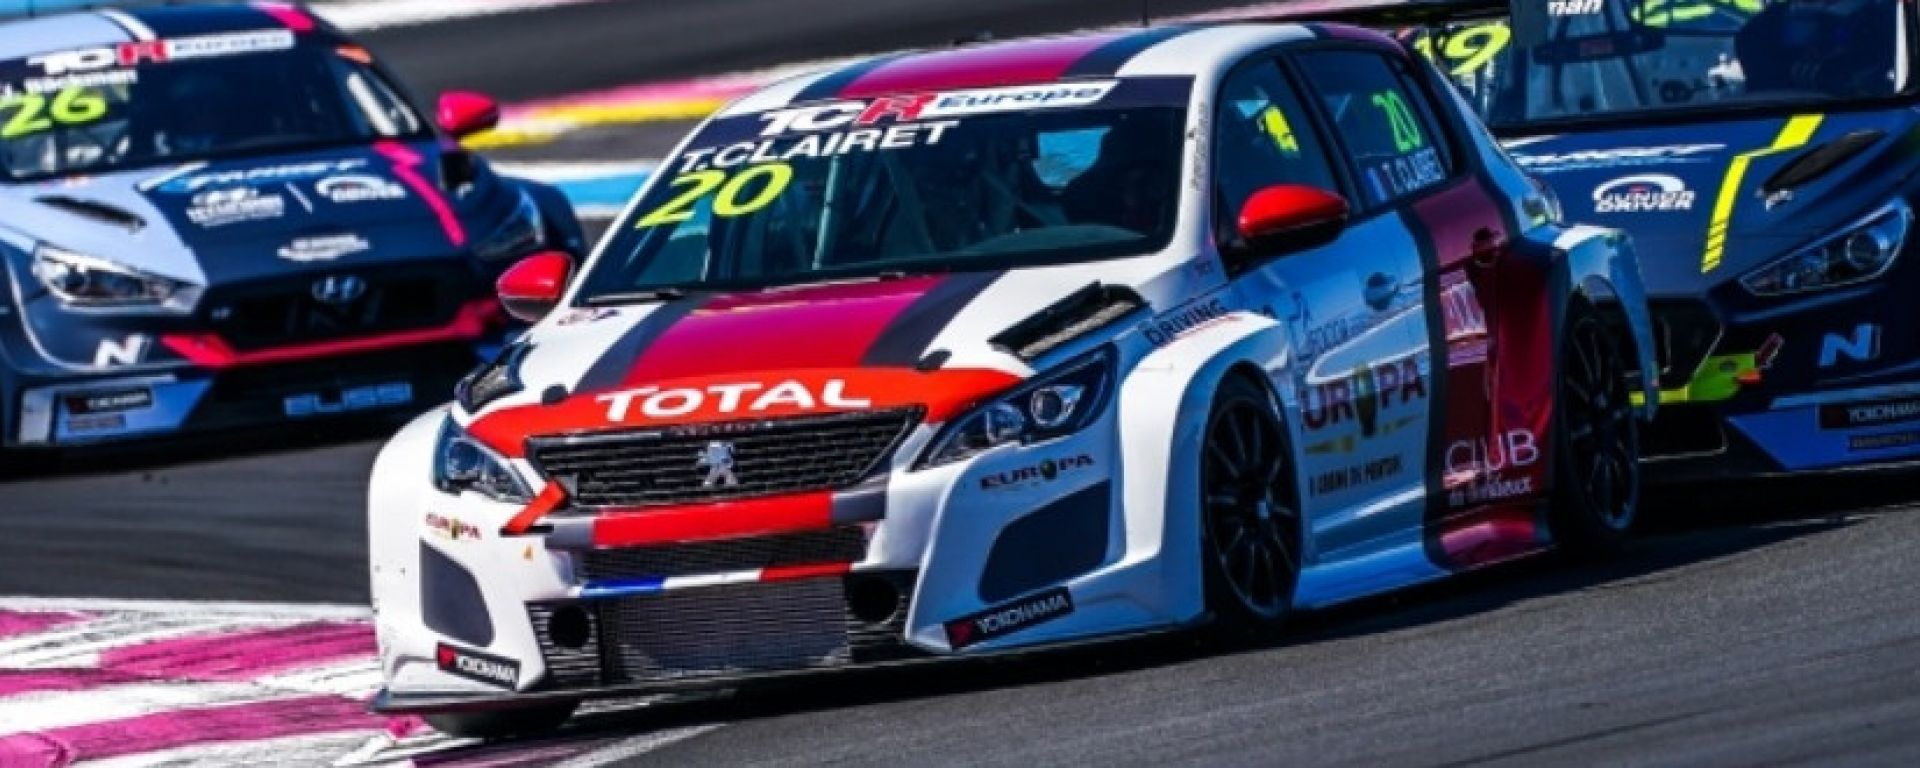 TCR Europe 2020: Teddy Clairet (Peugeot)